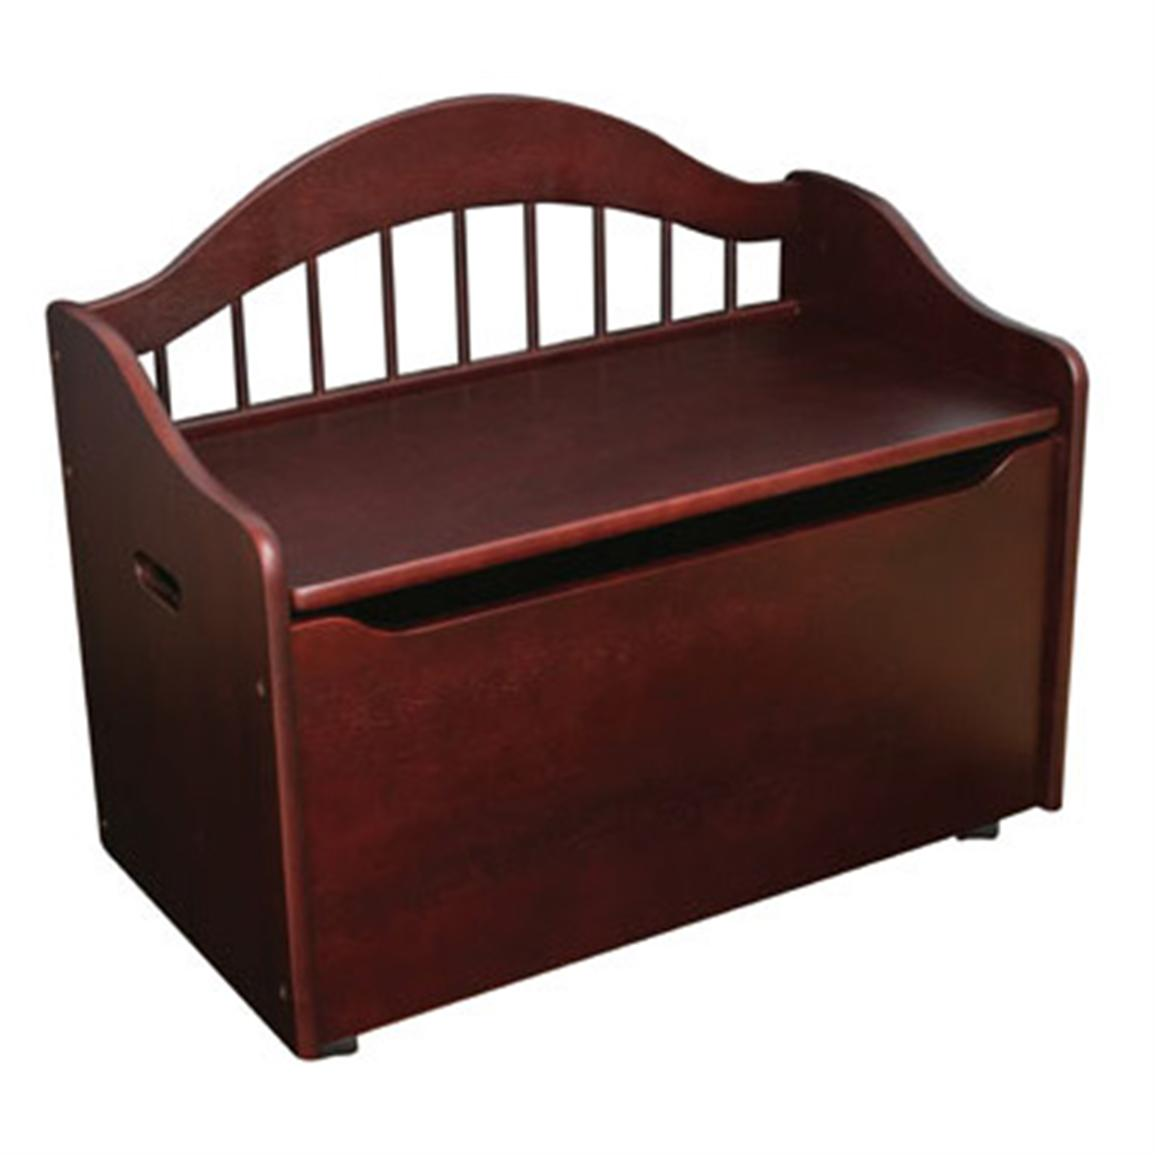 KidKraft Limited Edition Toy Chest, Cherry